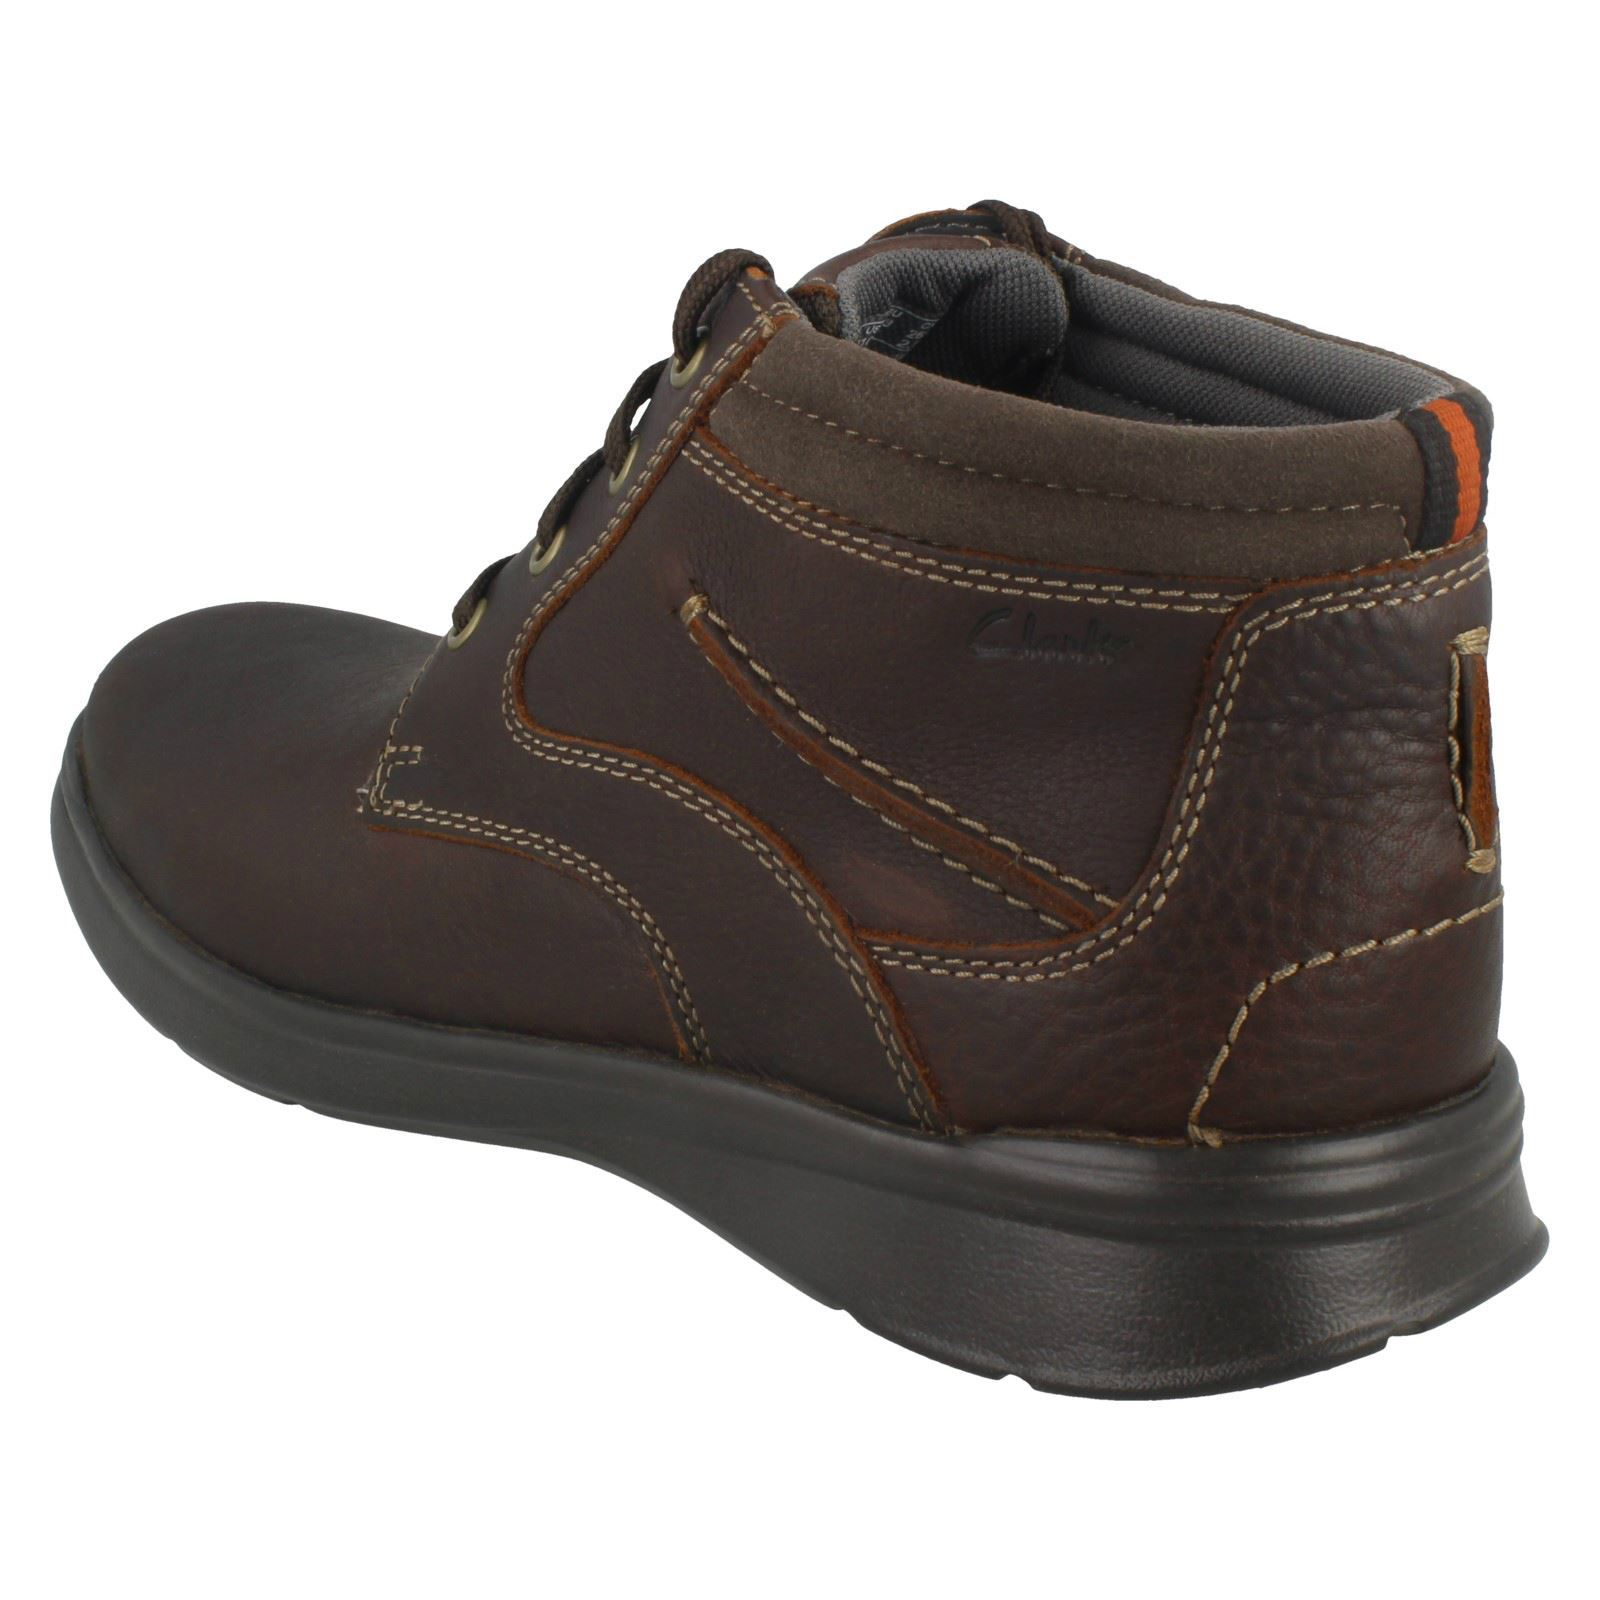 Hombre Clarks Clarks Clarks Cotrell Rise Casual Lace Up Ankle botas 7ffde7